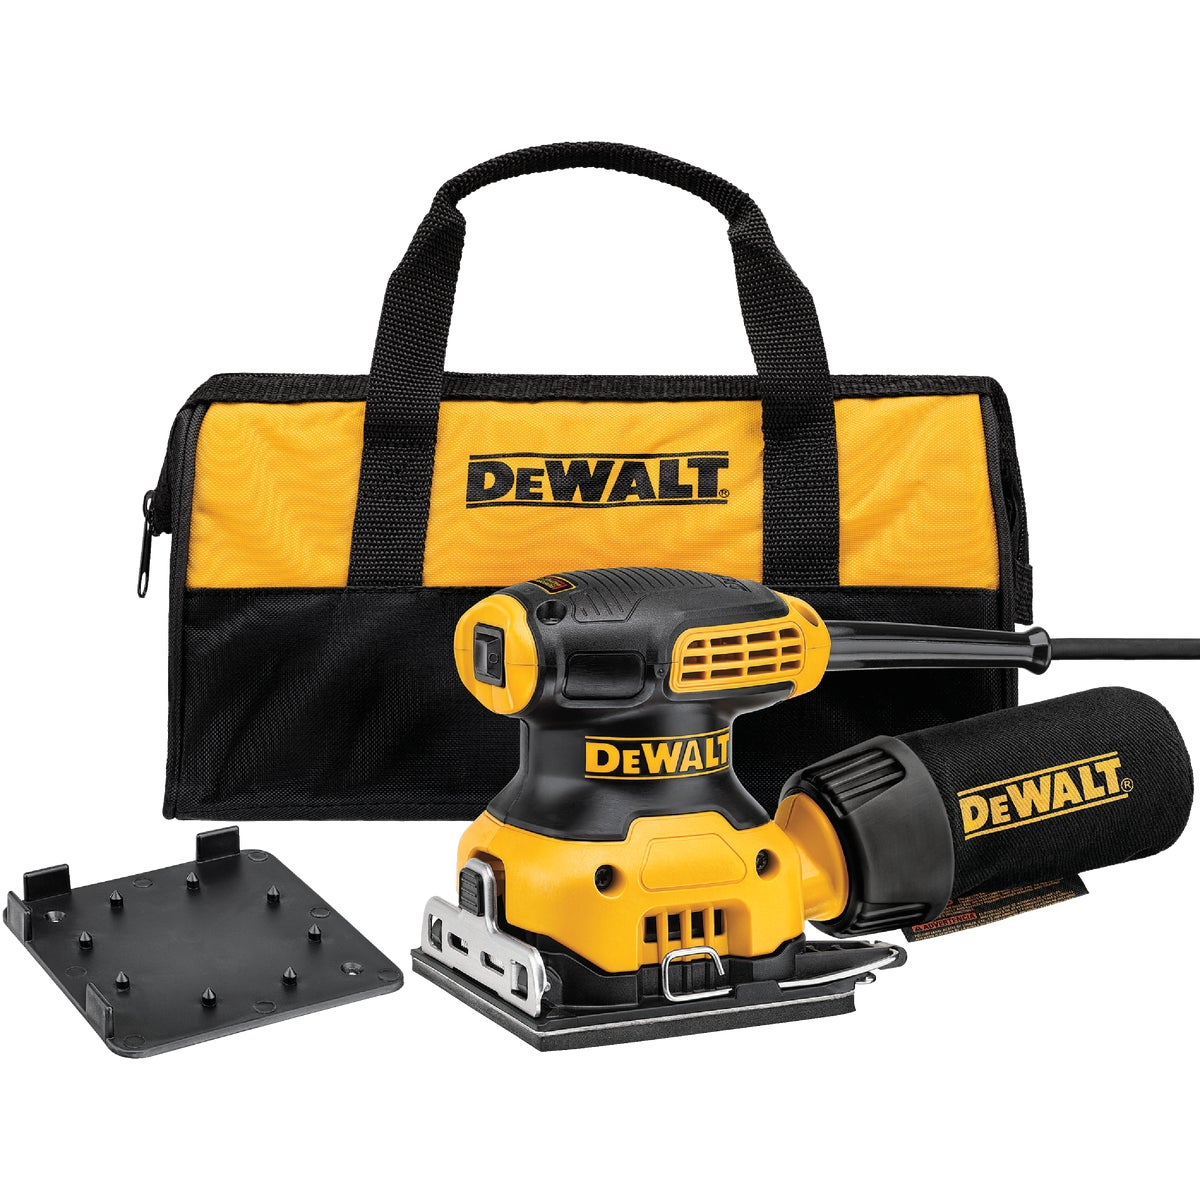 1/4 SHEET PALM SANDER - D26441K by DeWalt